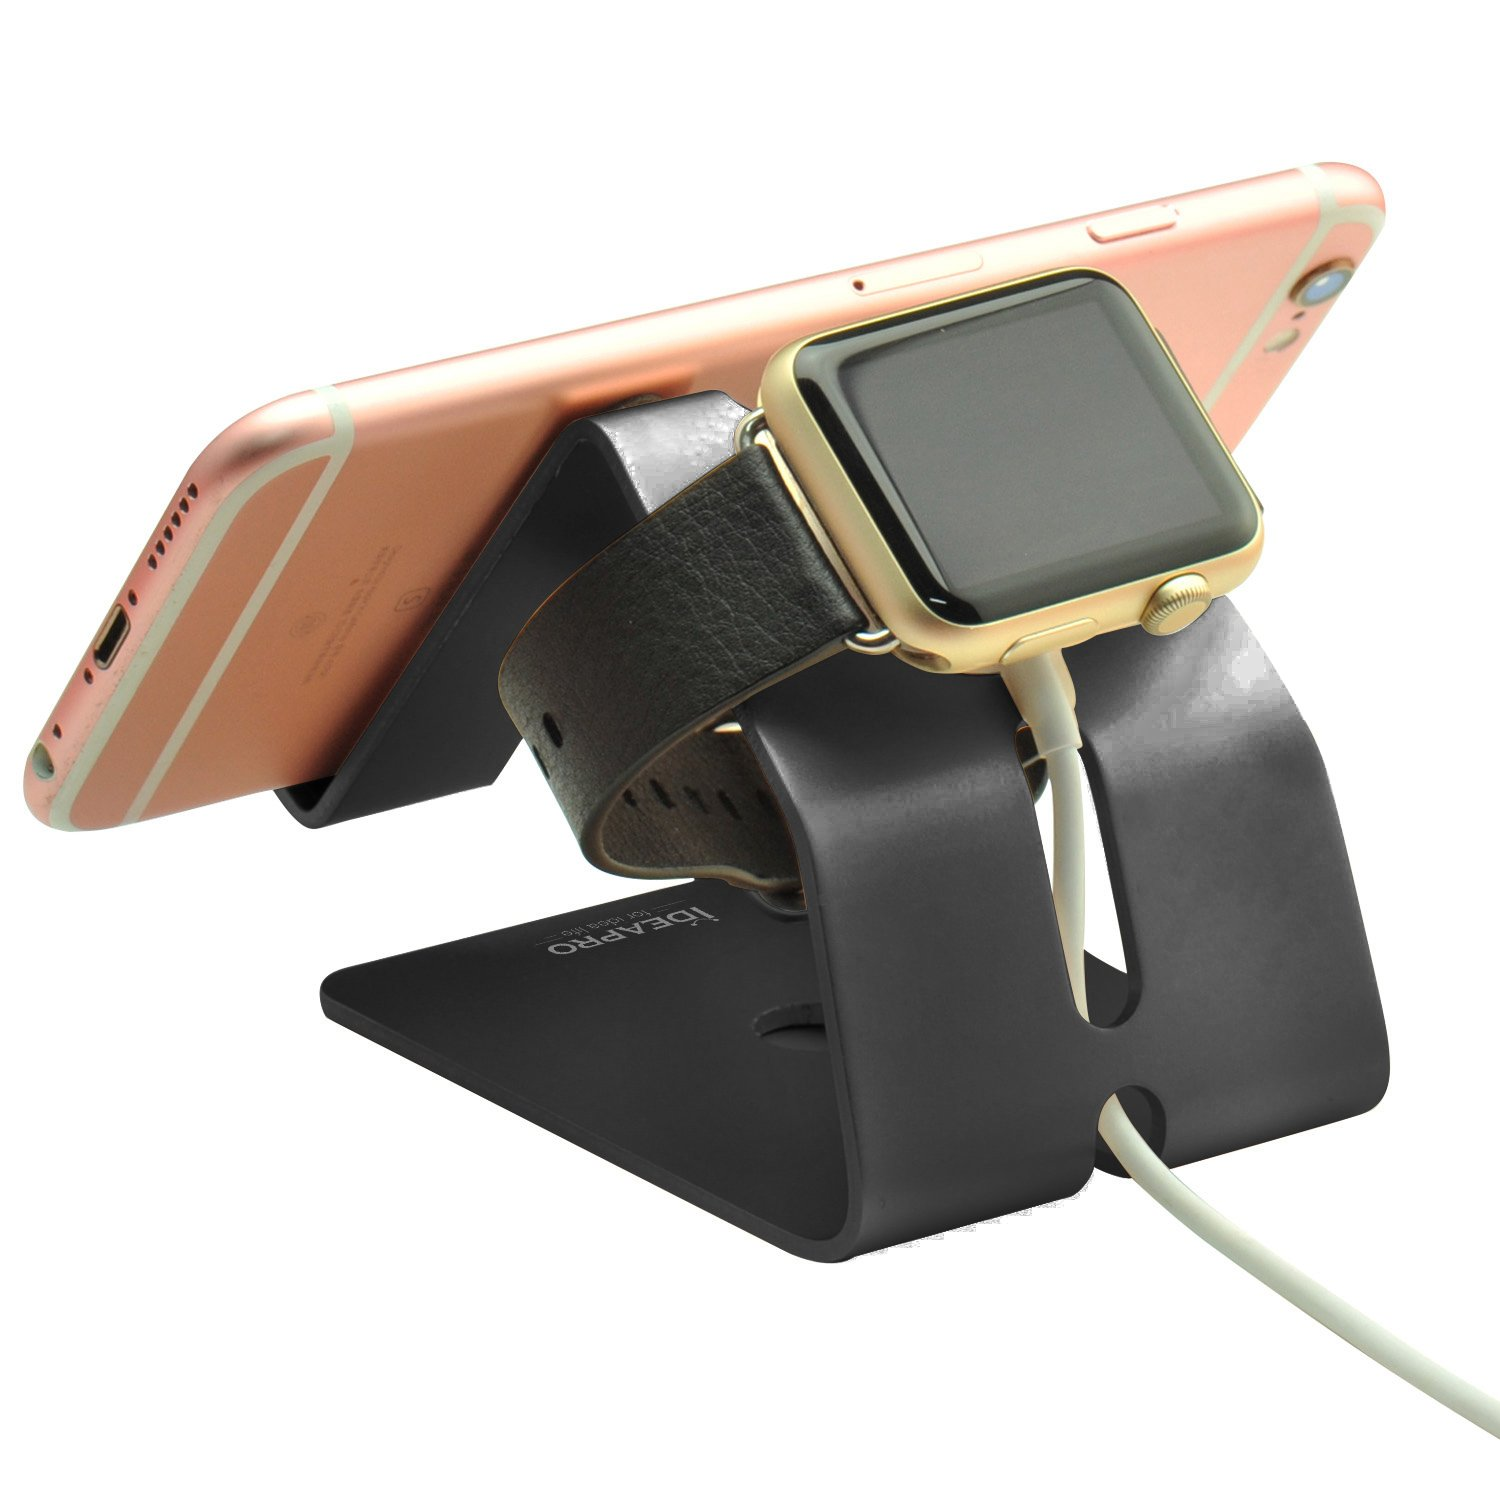 bended Apple device charging stand